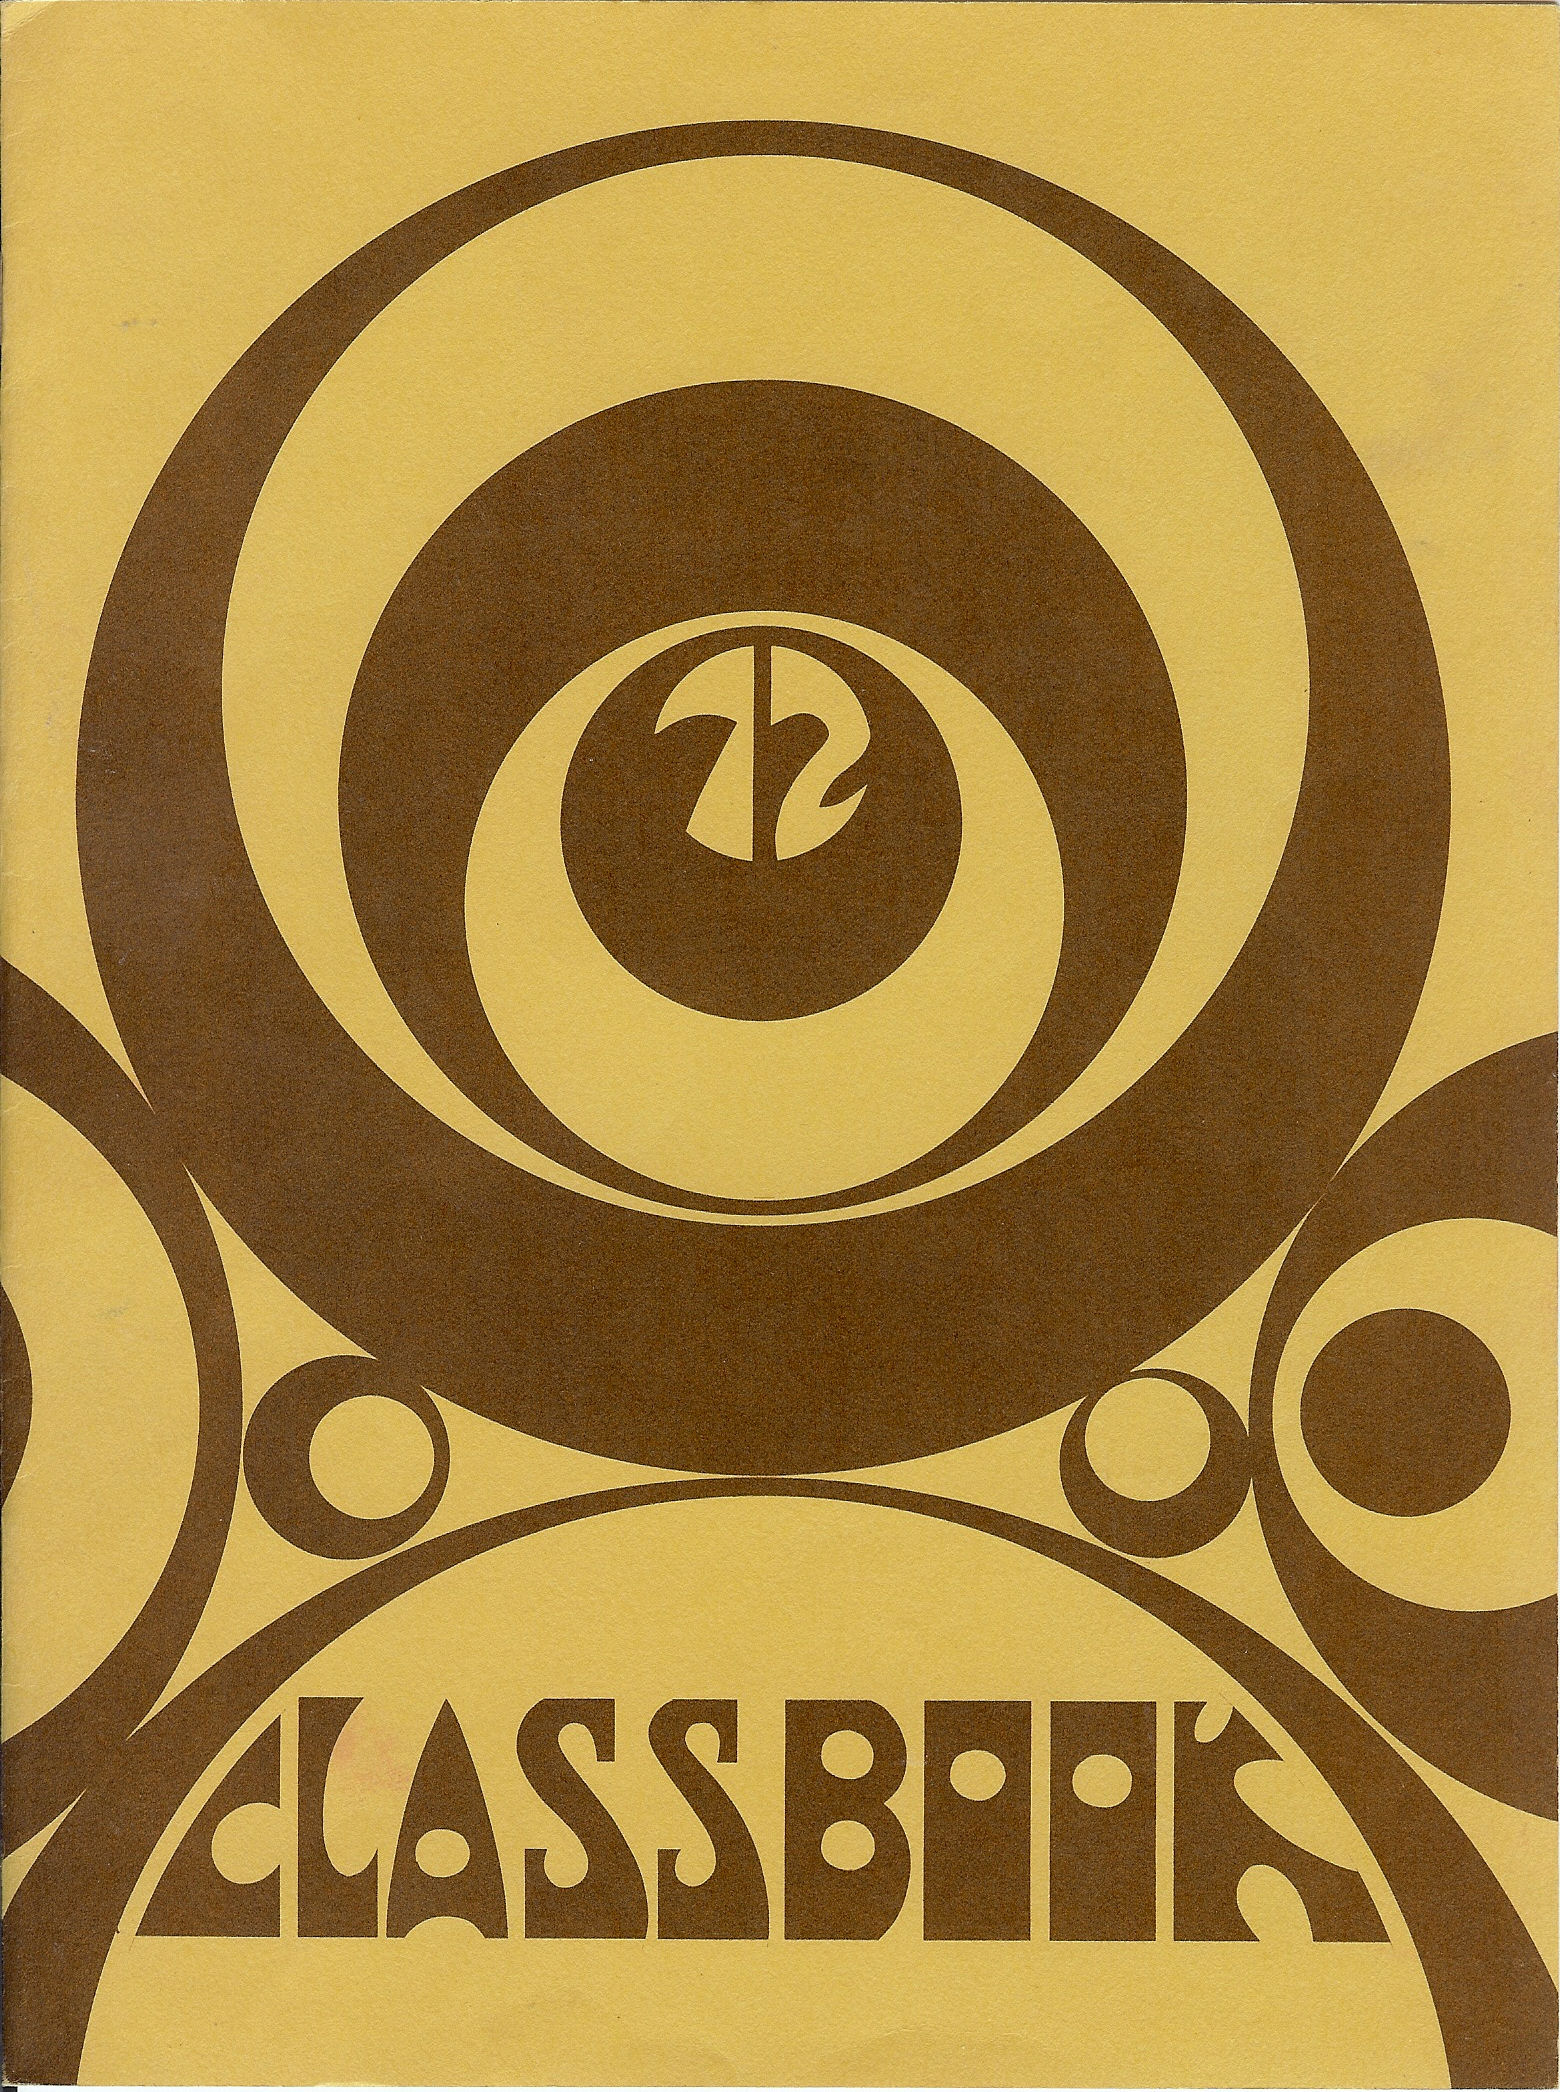 71-72 Yearbook Cover